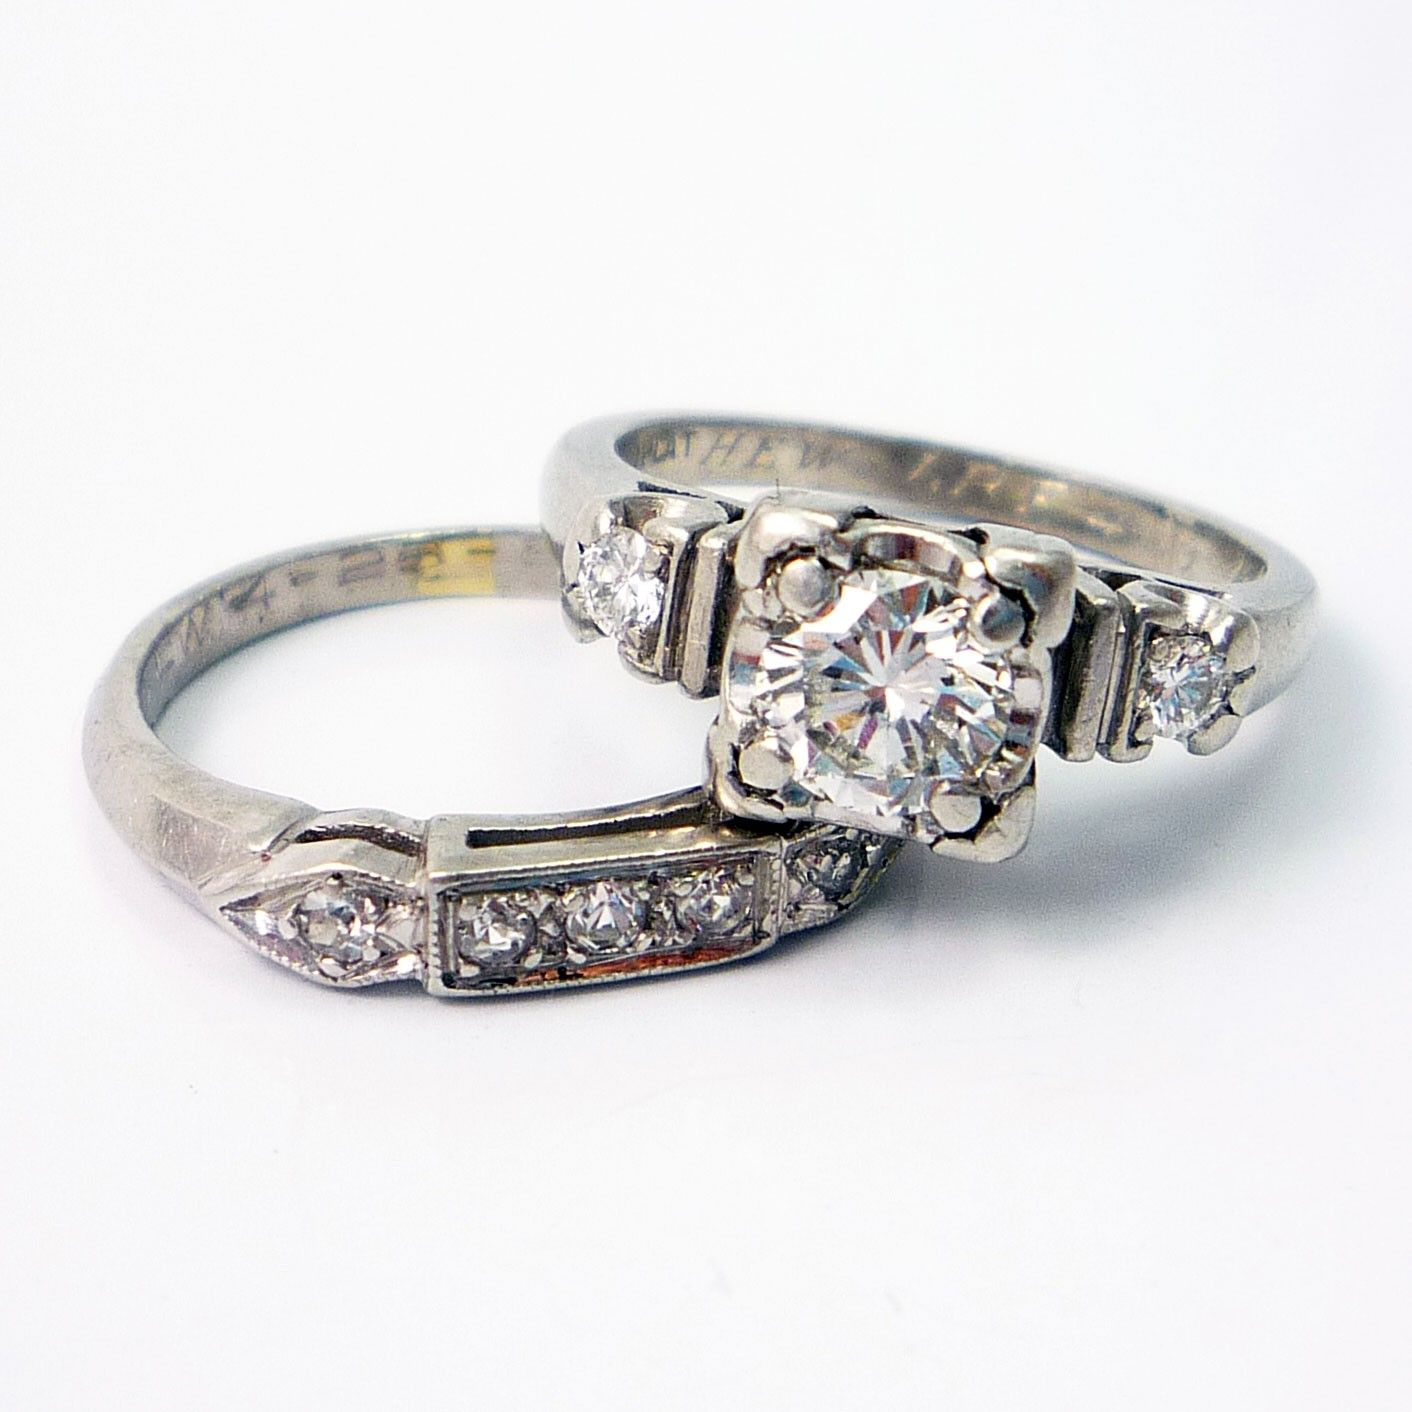 platinum vintage retro diamond engagement wedding ring band set this is it i would totally trade for this one - Vintage Wedding Ring Set